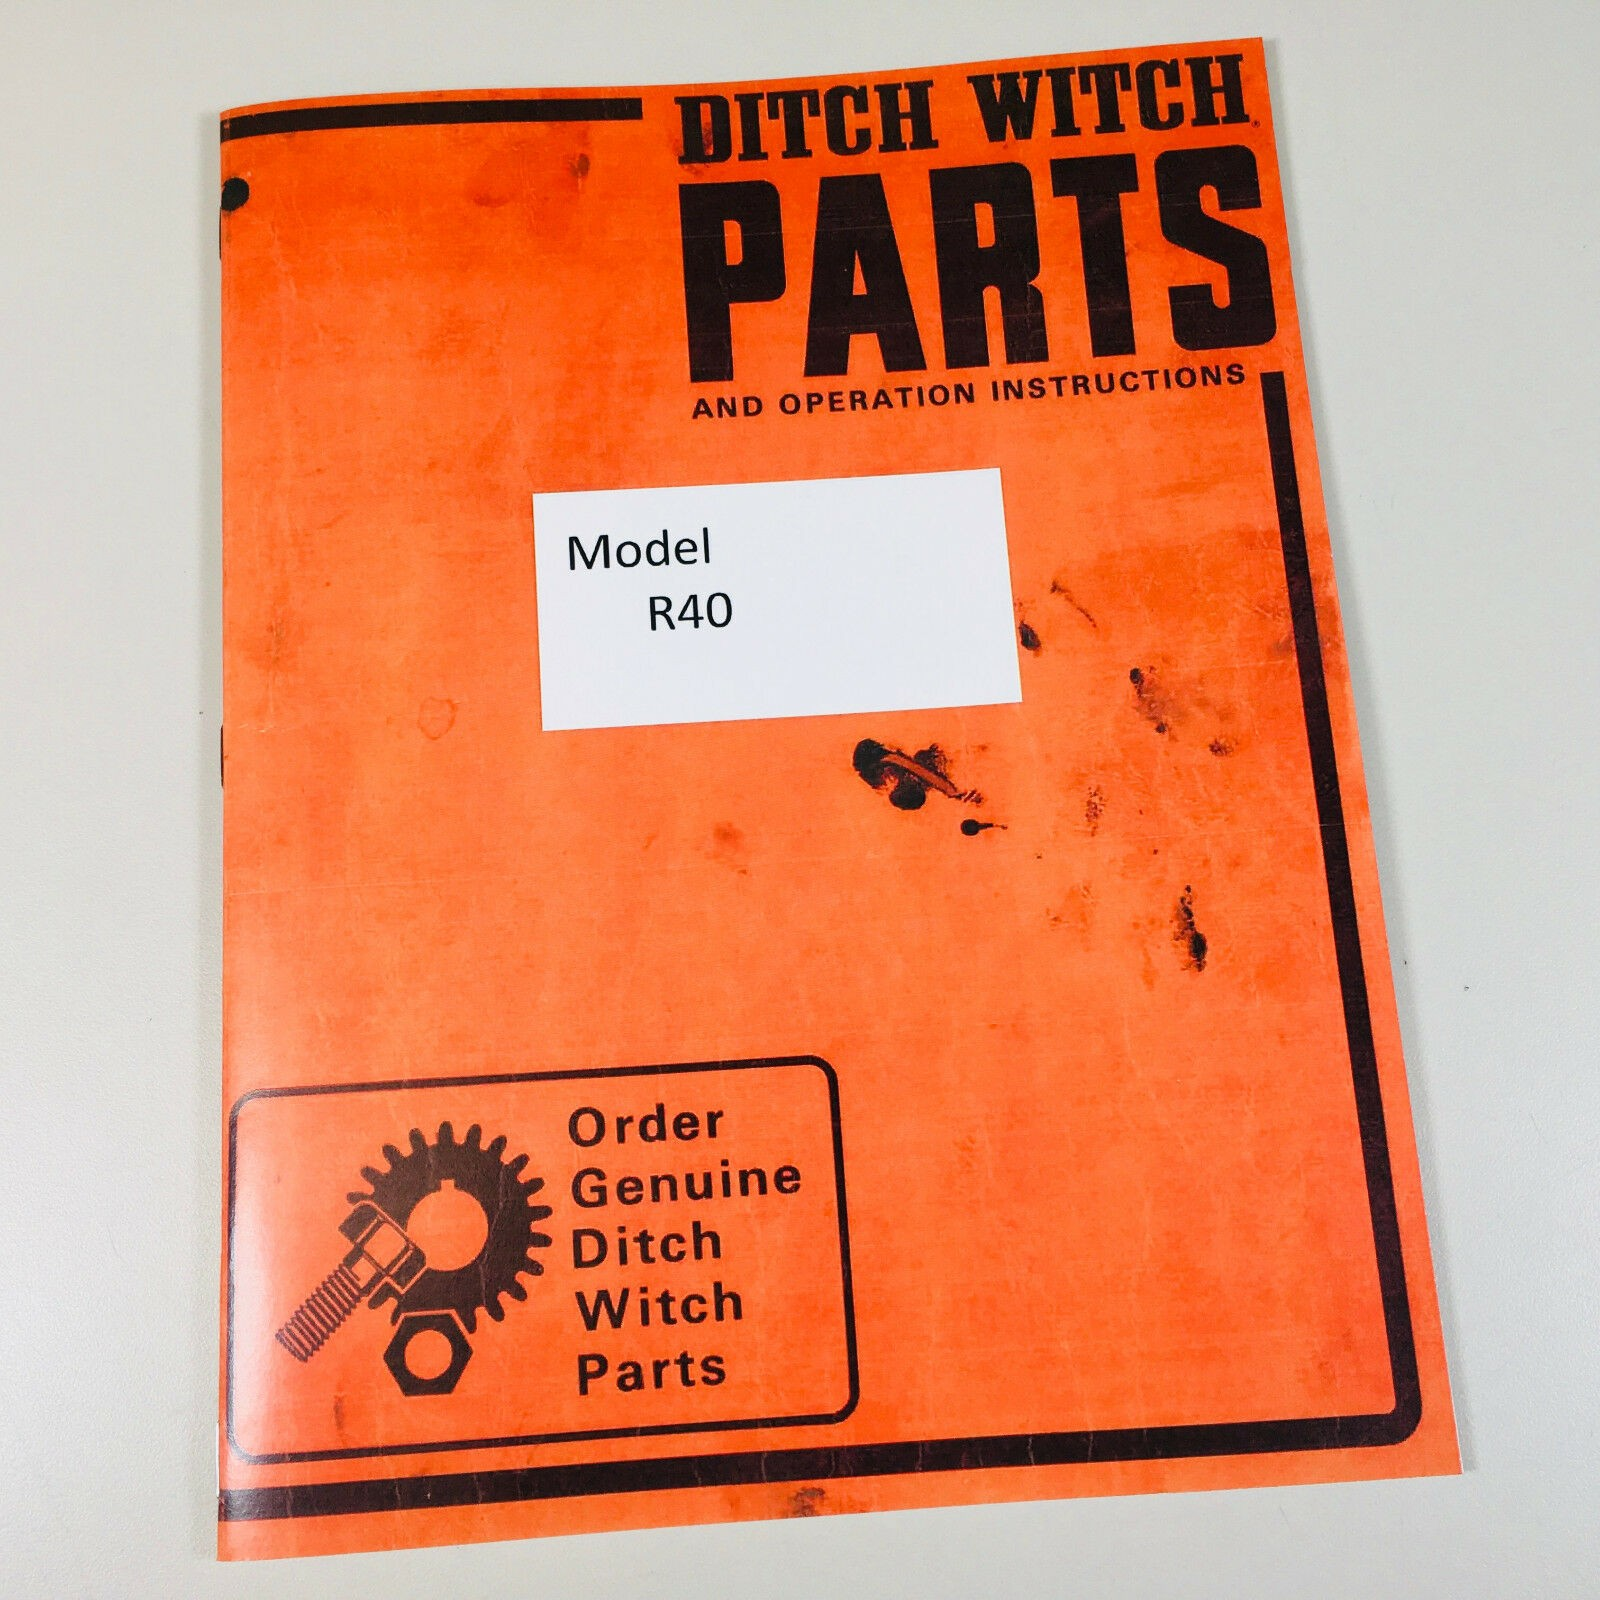 Ditch Witch 1030 Parts Breakdown Manuals] 1030 Ditch Witch Service Manual [pdf] Full Version Of Ditch Witch 1030 Parts Breakdown